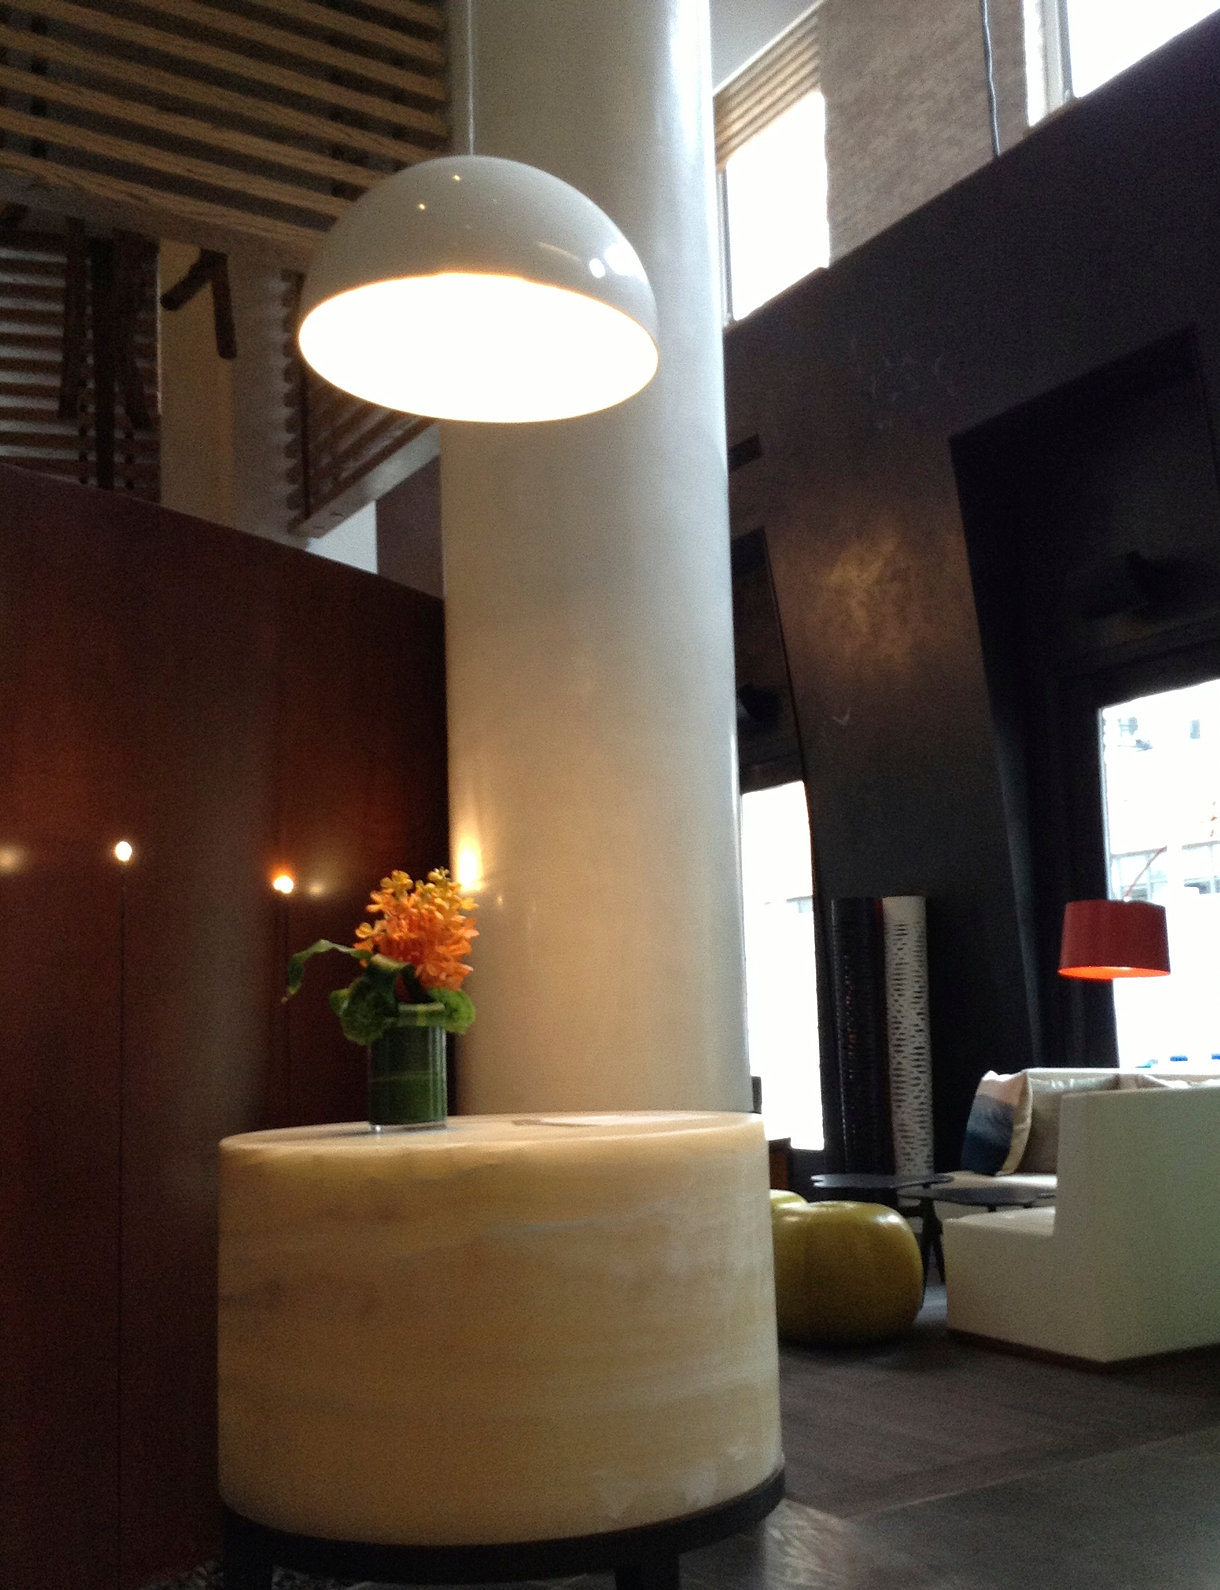 FAUX | We design decorative finishes for walls | NYC | Commercial ...